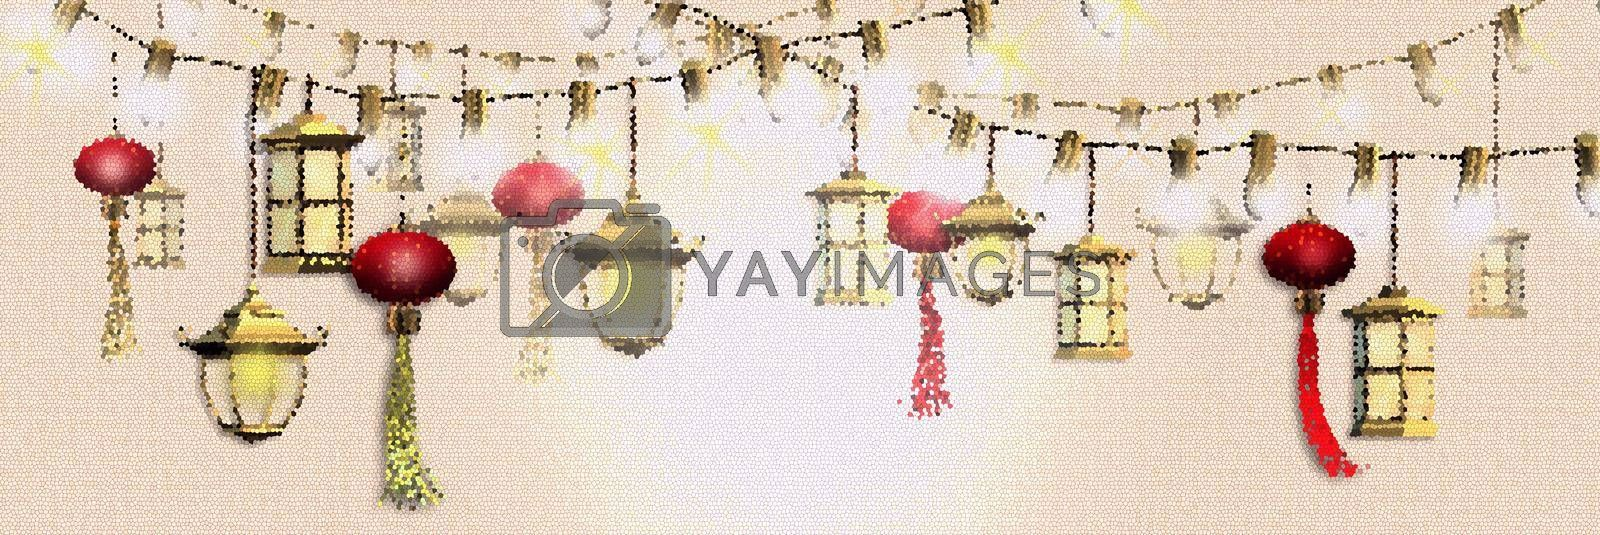 Lantern festival. Spring Chinese festival design. Oriental Asian traditional lanterns on string of lights on pastel yellow background. Place for text, 3D render